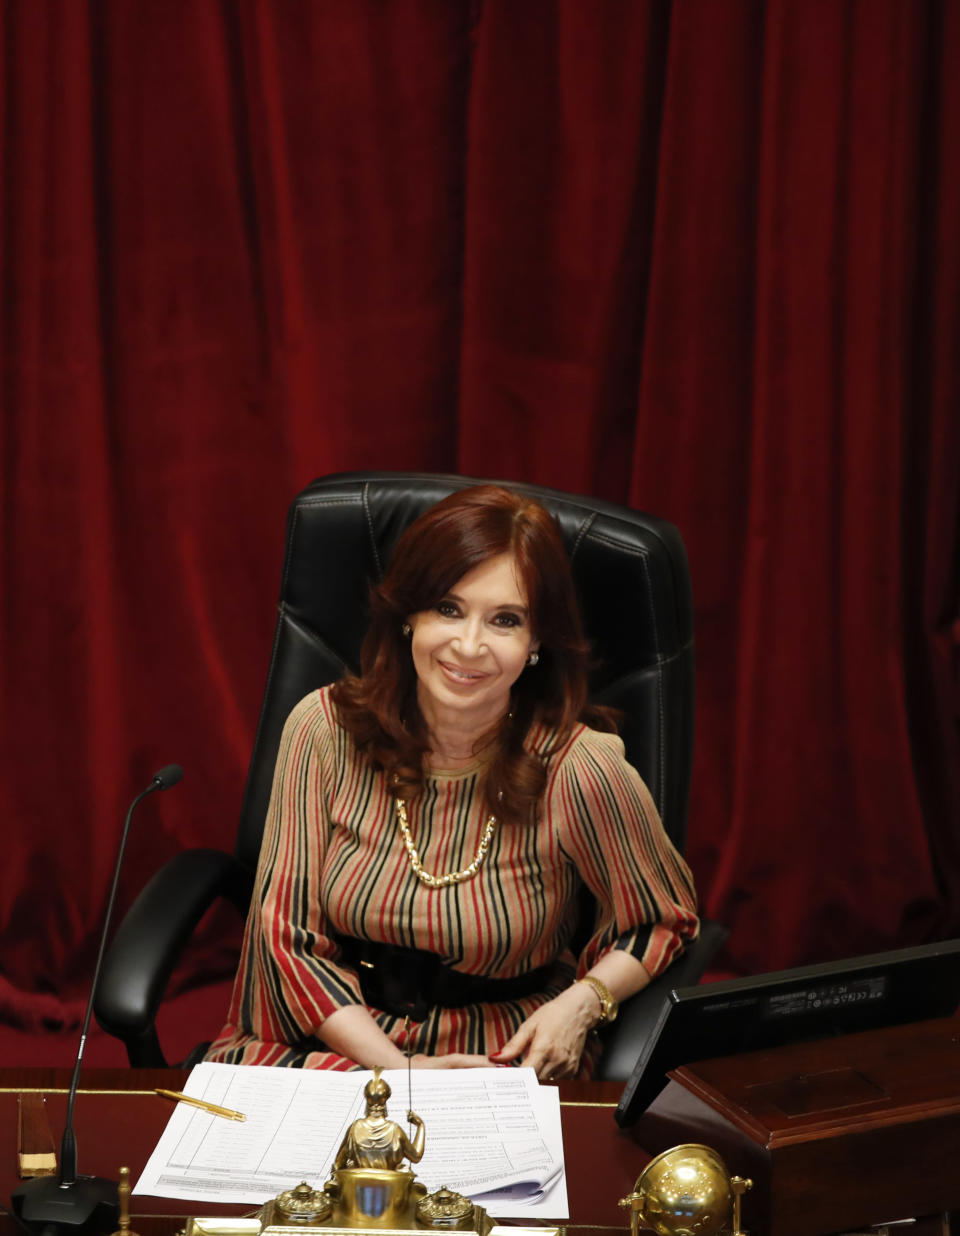 Senate President and Argentina's Vice President Cristina Fernandez smiles during the debate of a bill that would legalize abortion, inside Congress in Buenos Aires, Argentina, Tuesday, Dec. 29, 2020. (AP Photo/Natacha Pisarenko)